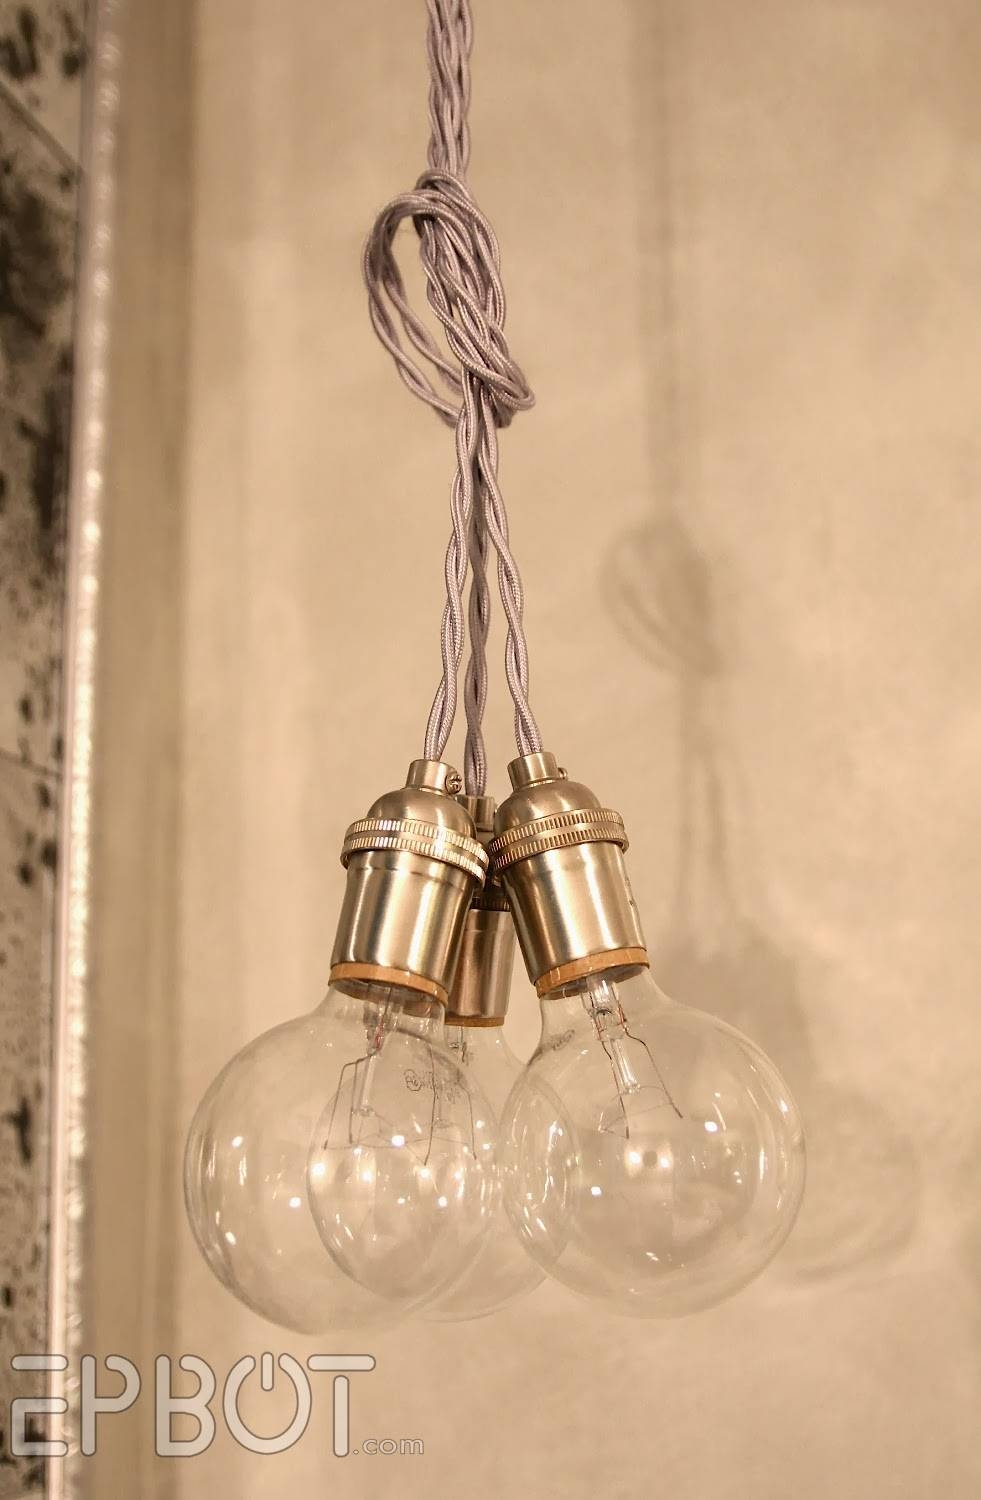 Epbot: Wire Your Own Pendant Lighting – Cheap, Easy, & Fun! Within Rope Cord Pendant Lights (View 4 of 15)